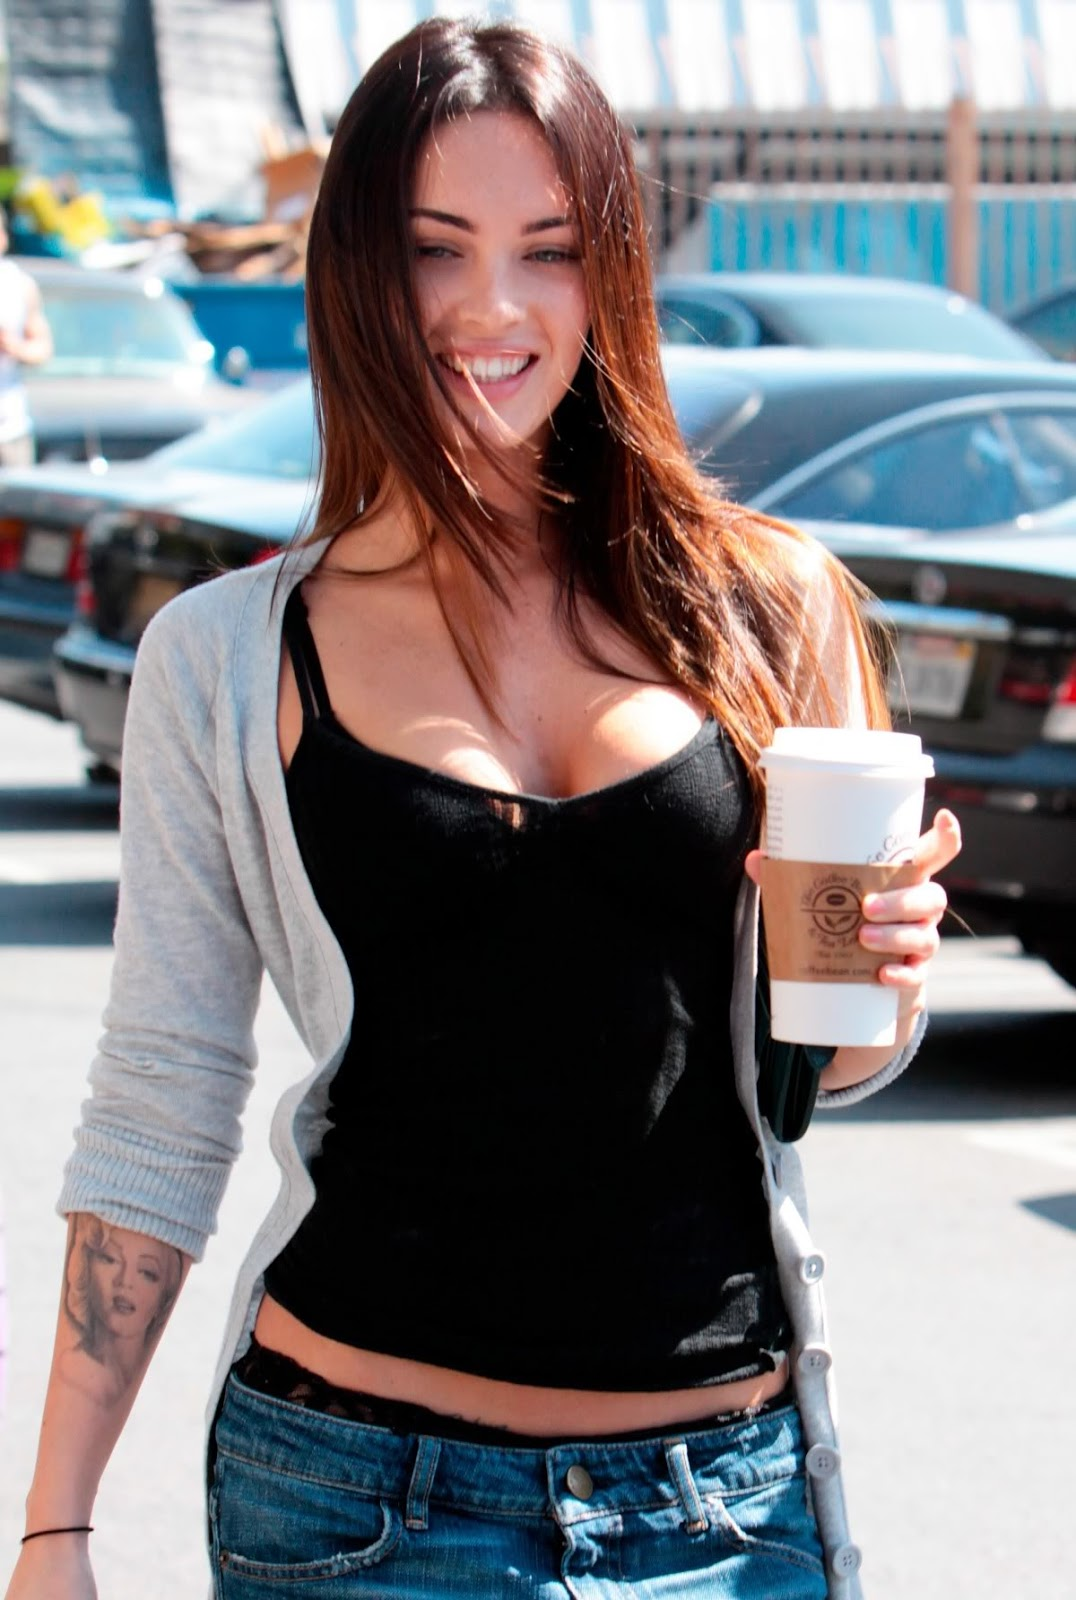 Megan Fox Takes Her Cleavage To The Lakers Game